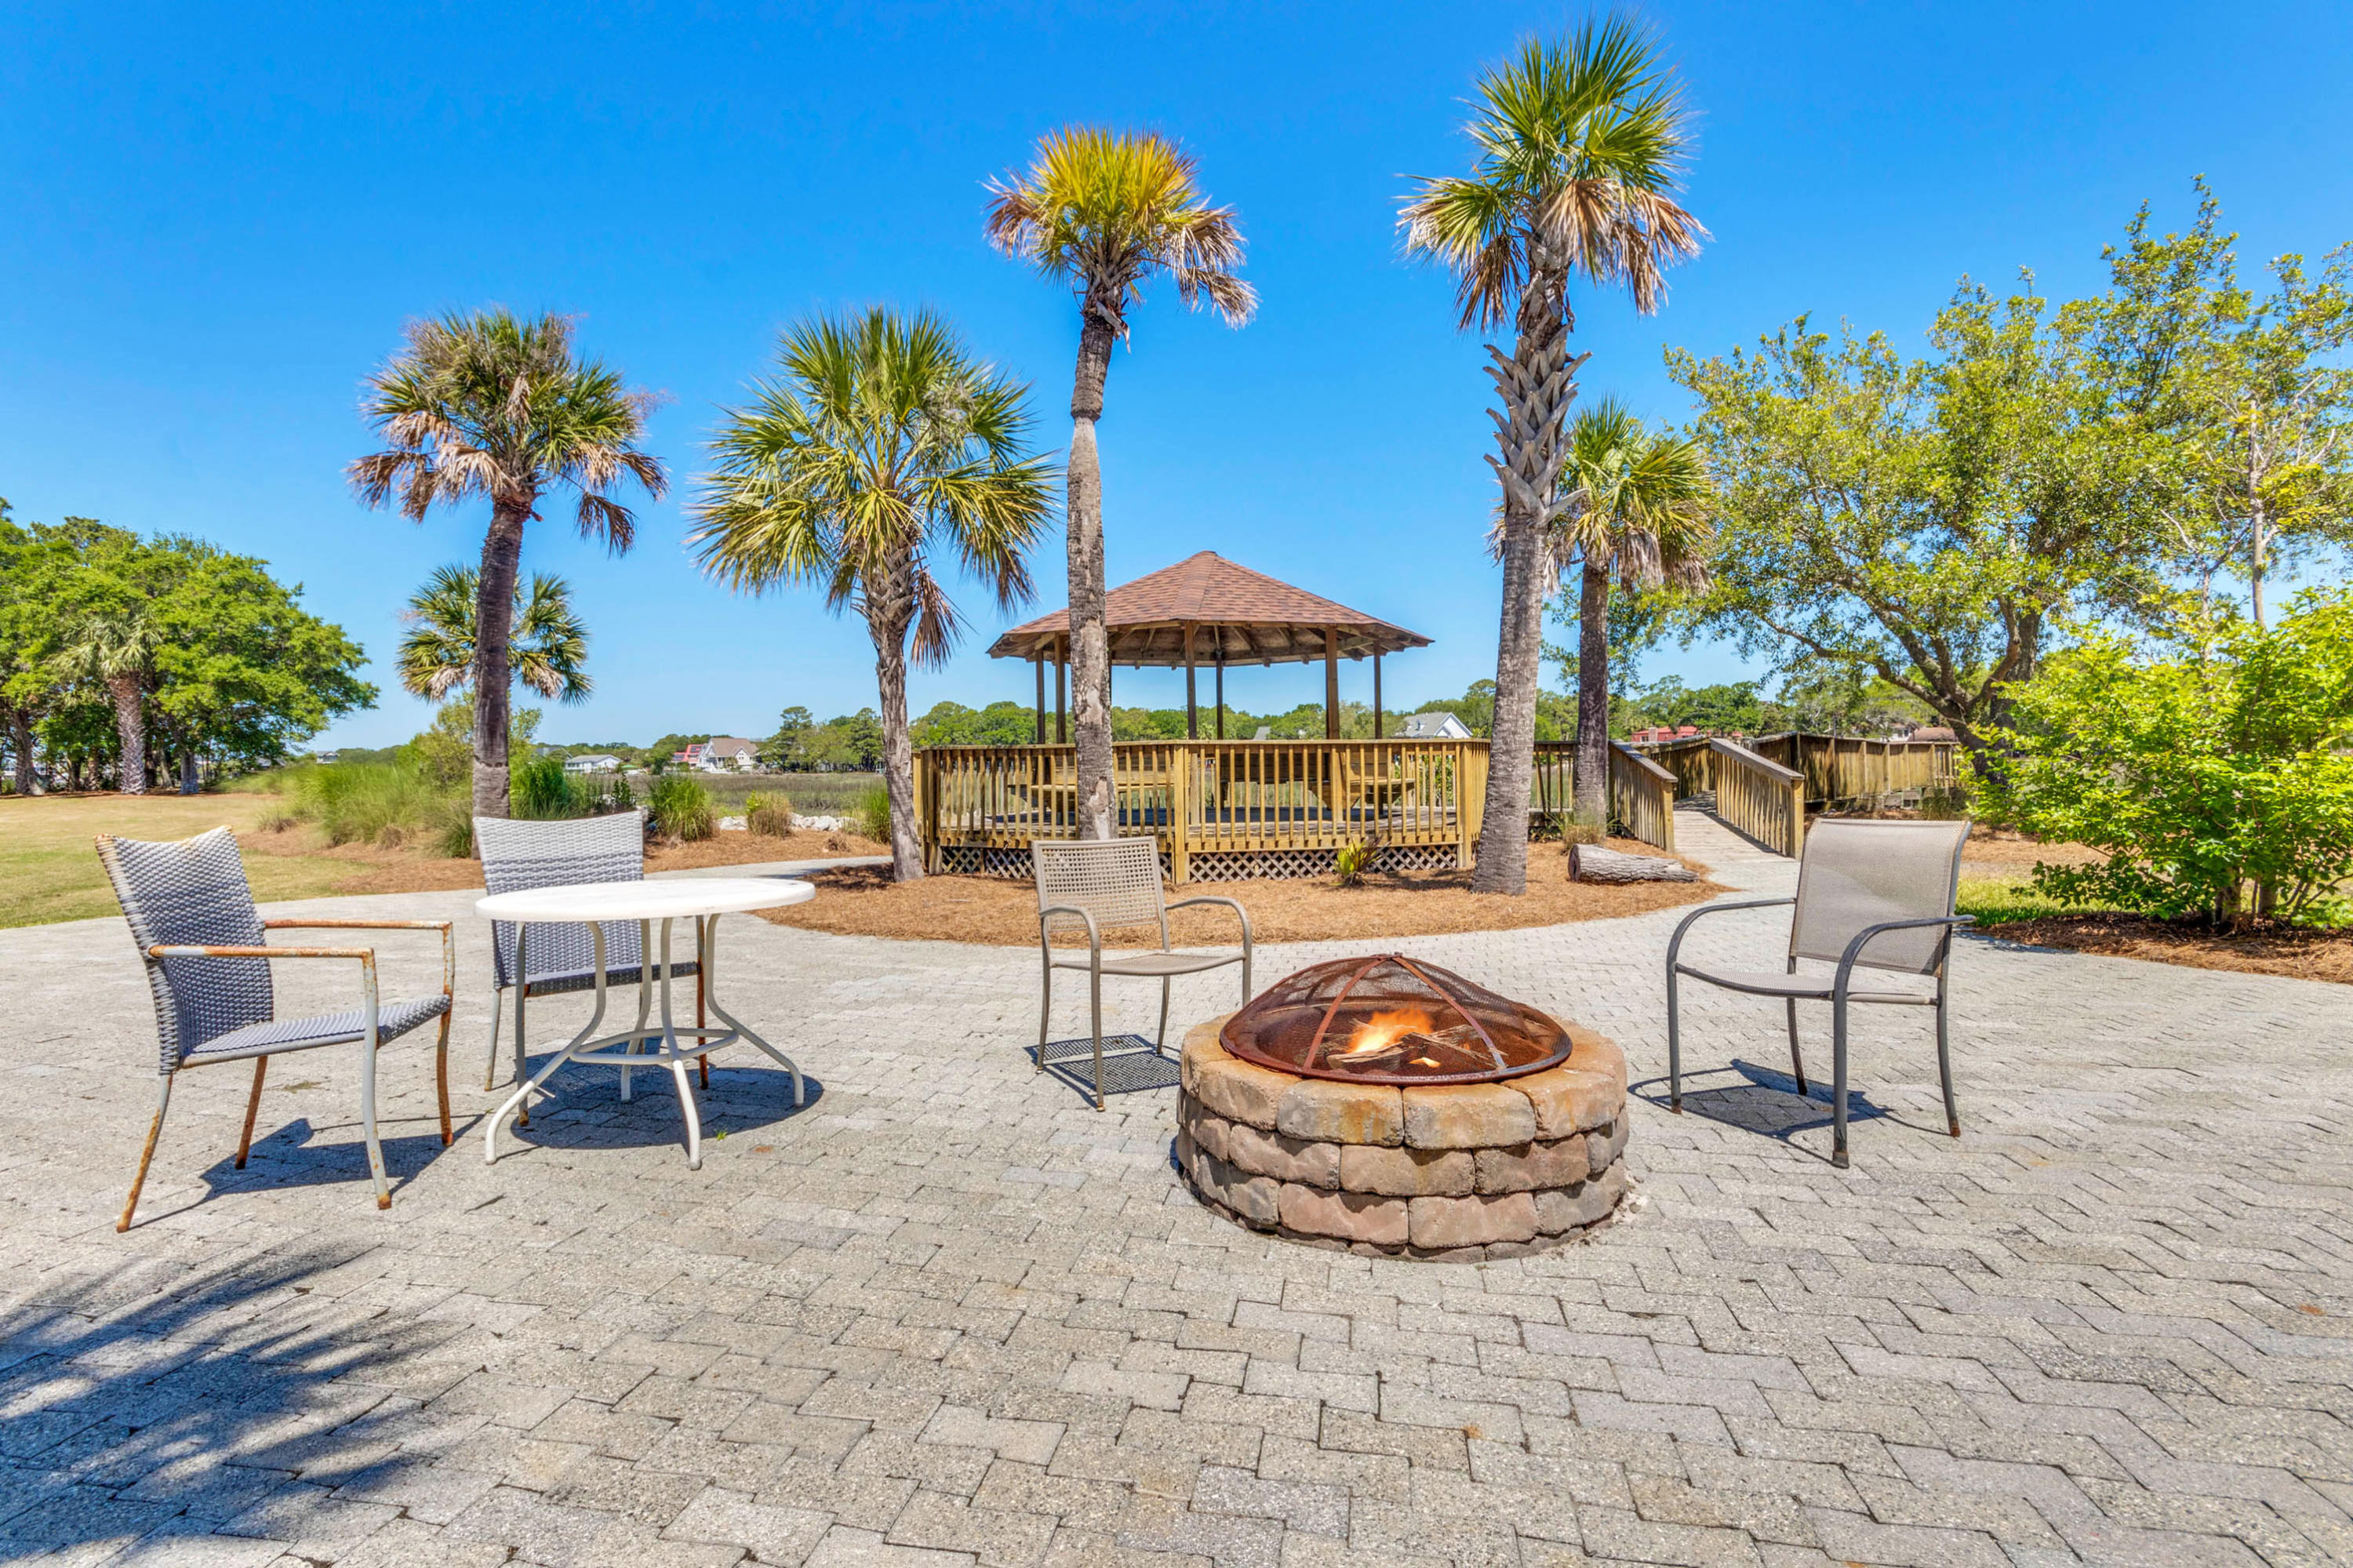 Mariners Cay Homes For Sale - 202 Mariners Cay, Folly Beach, SC - 4